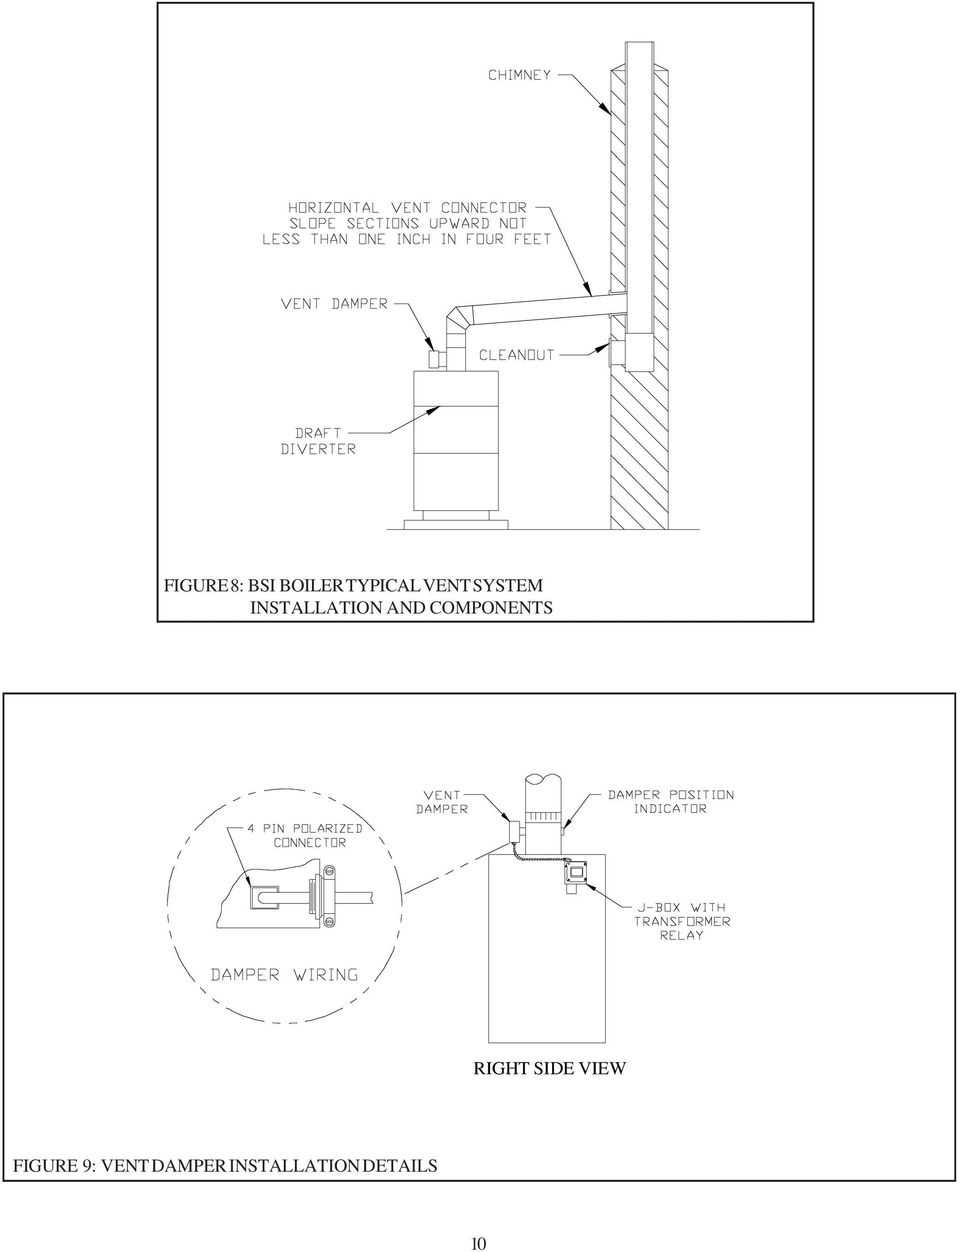 Gas Fired Natural Draft Steam Boilers Installation Instructions Vent Damper Wiring Diagram Compoets Right Side View